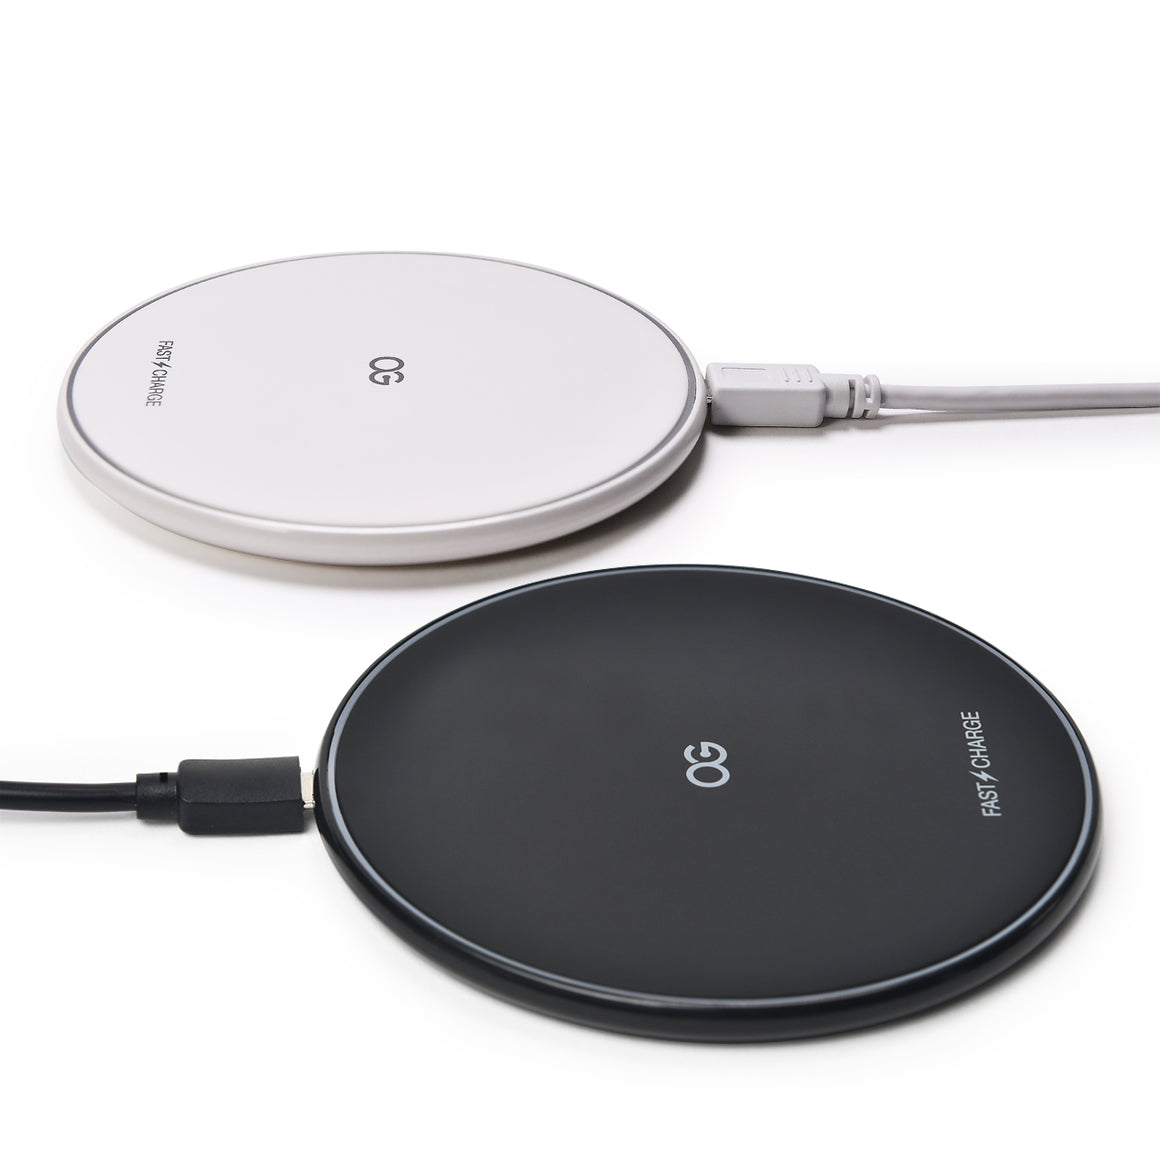 [2Pack] Fast Wireless Charging Pad, Black and White